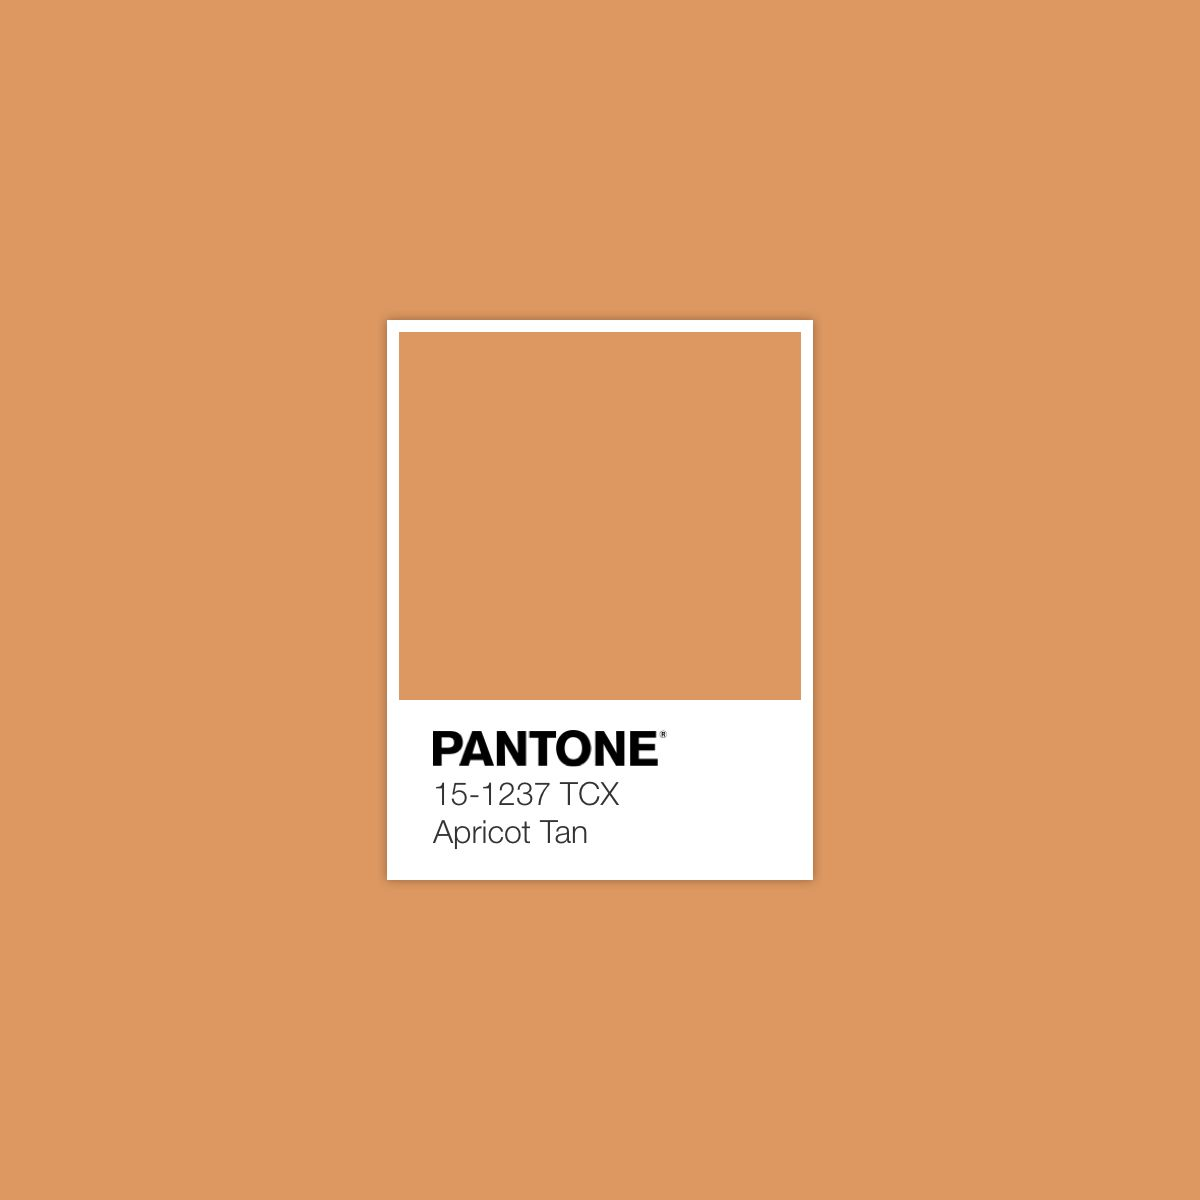 Pantone 2017 Apricot Tan Pantone Color Of The Day May 19 2017